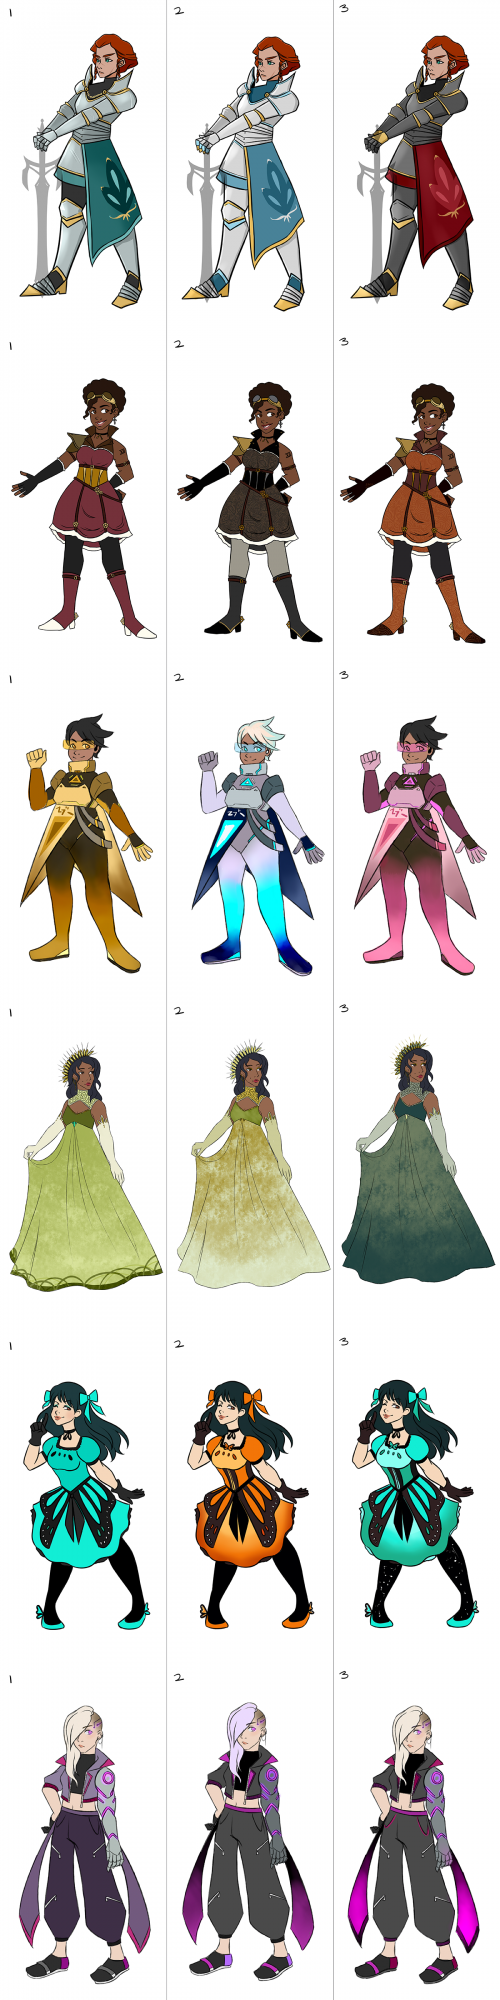 Different character color palettes for each character based on a specific genre (Medieval/Steampunk/Sci-Fi/Ceremonial/Magical Girl/Cyberpunk)